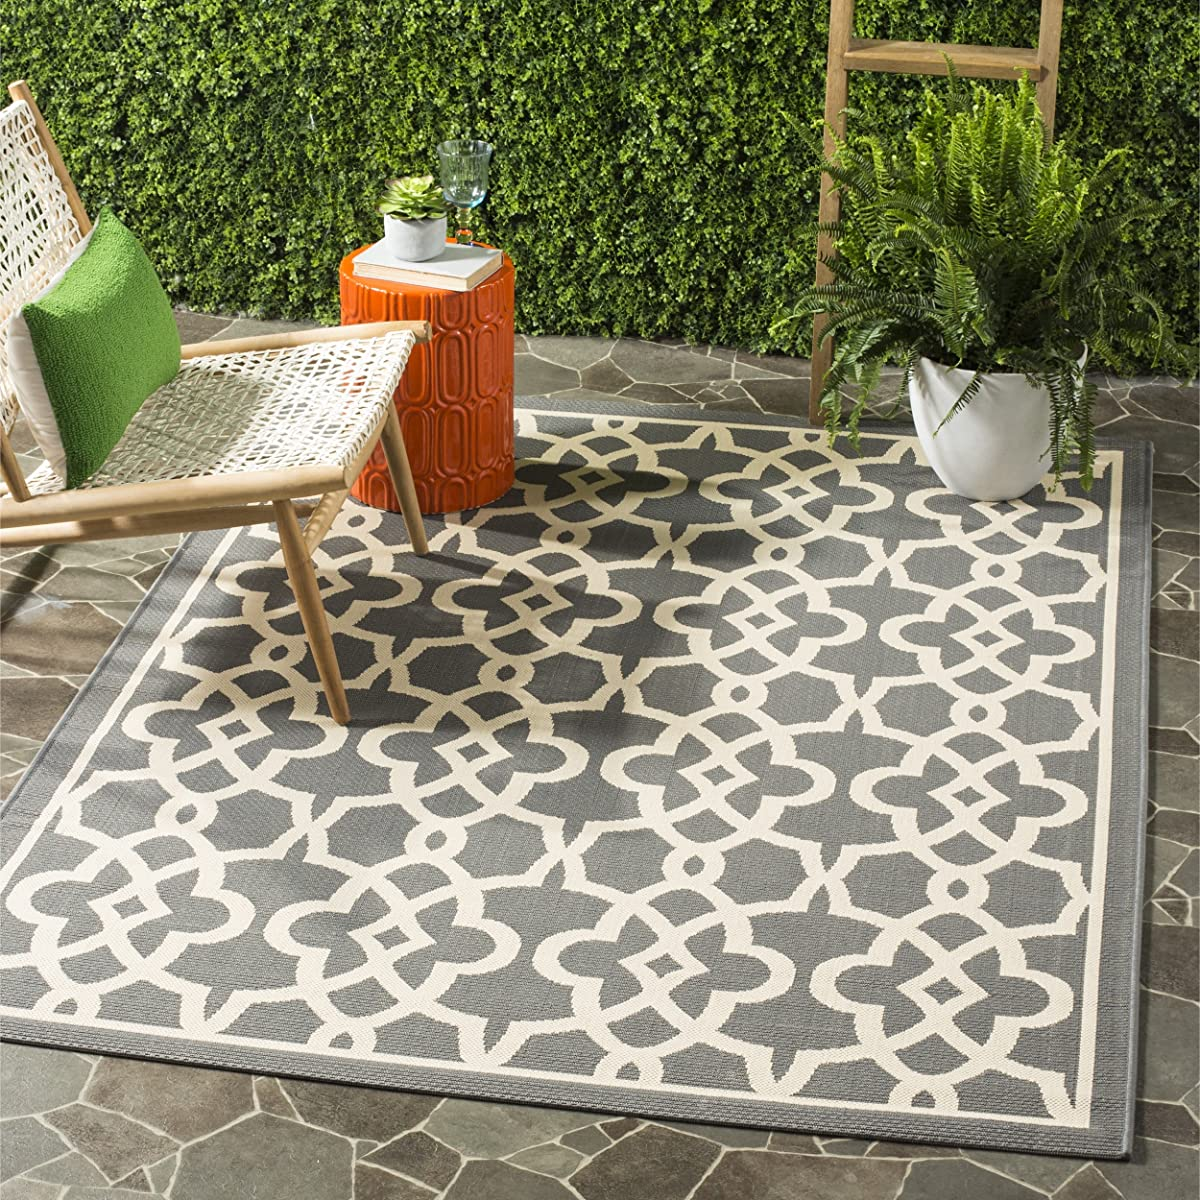 "Safavieh Courtyard Collection CY6071-246 Grey and Beige Indoor/ Outdoor Area Rug (53"" x 77"")"